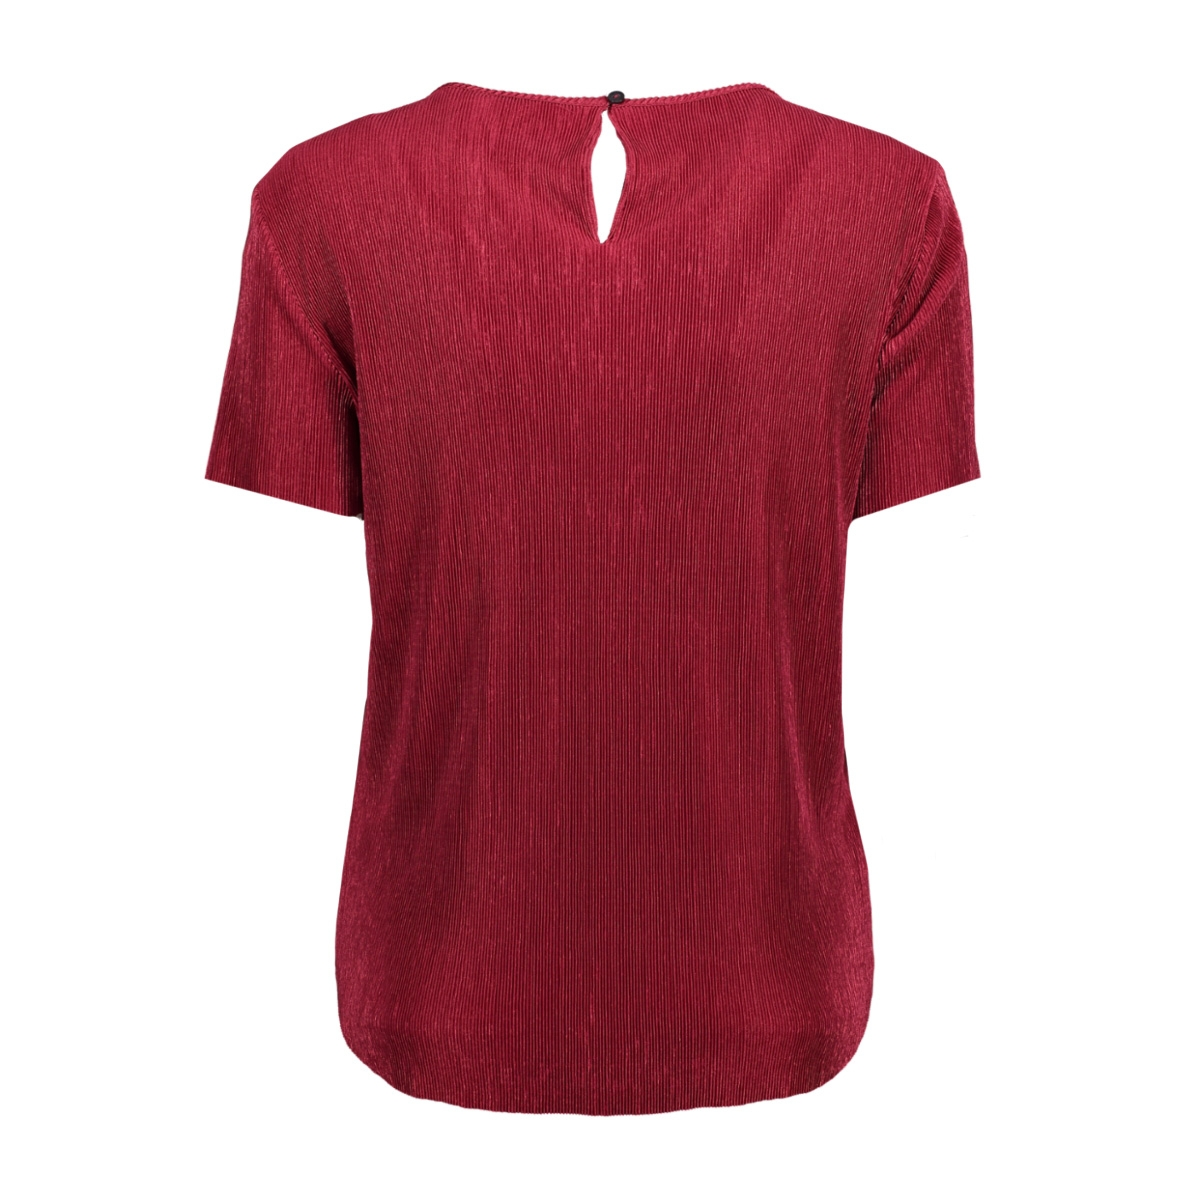 onlliga s/s top wvn 15144944 only t-shirt rumba red